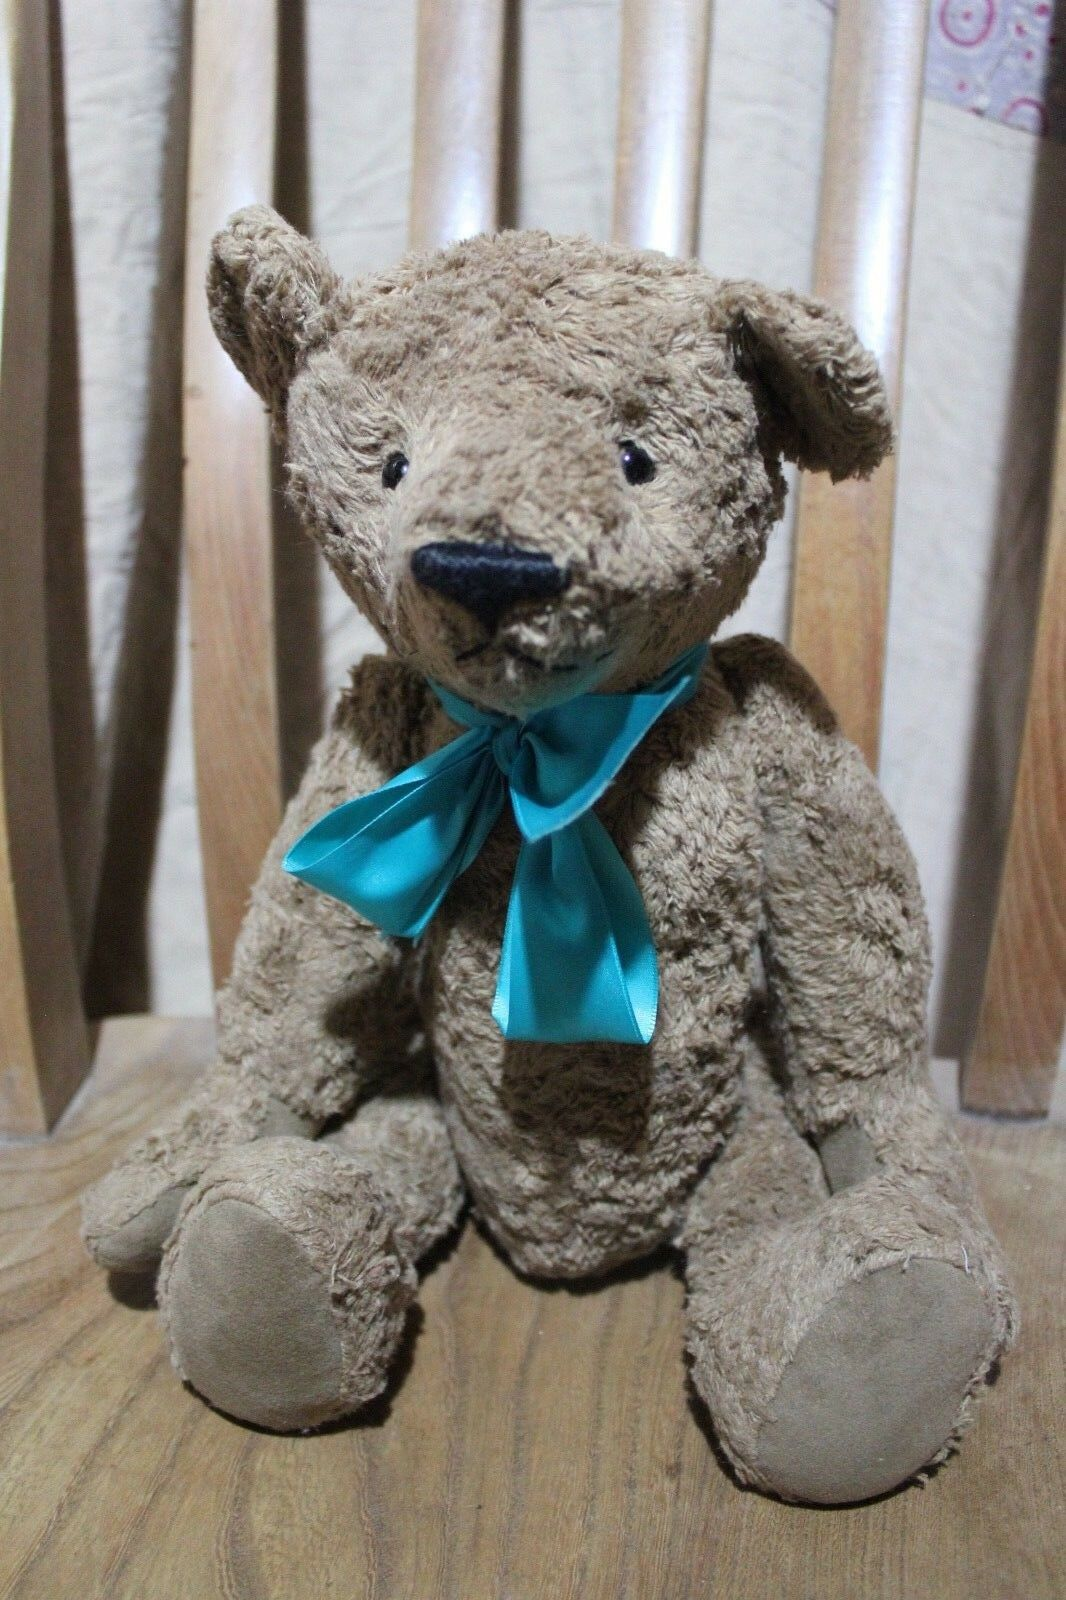 ARTIST BEAR SOMEWHERE IN TIME COLLECTOR COLLECTOR COLLECTOR TEDDY BY CAROL PODMORE SAMMY braun 0d98ca